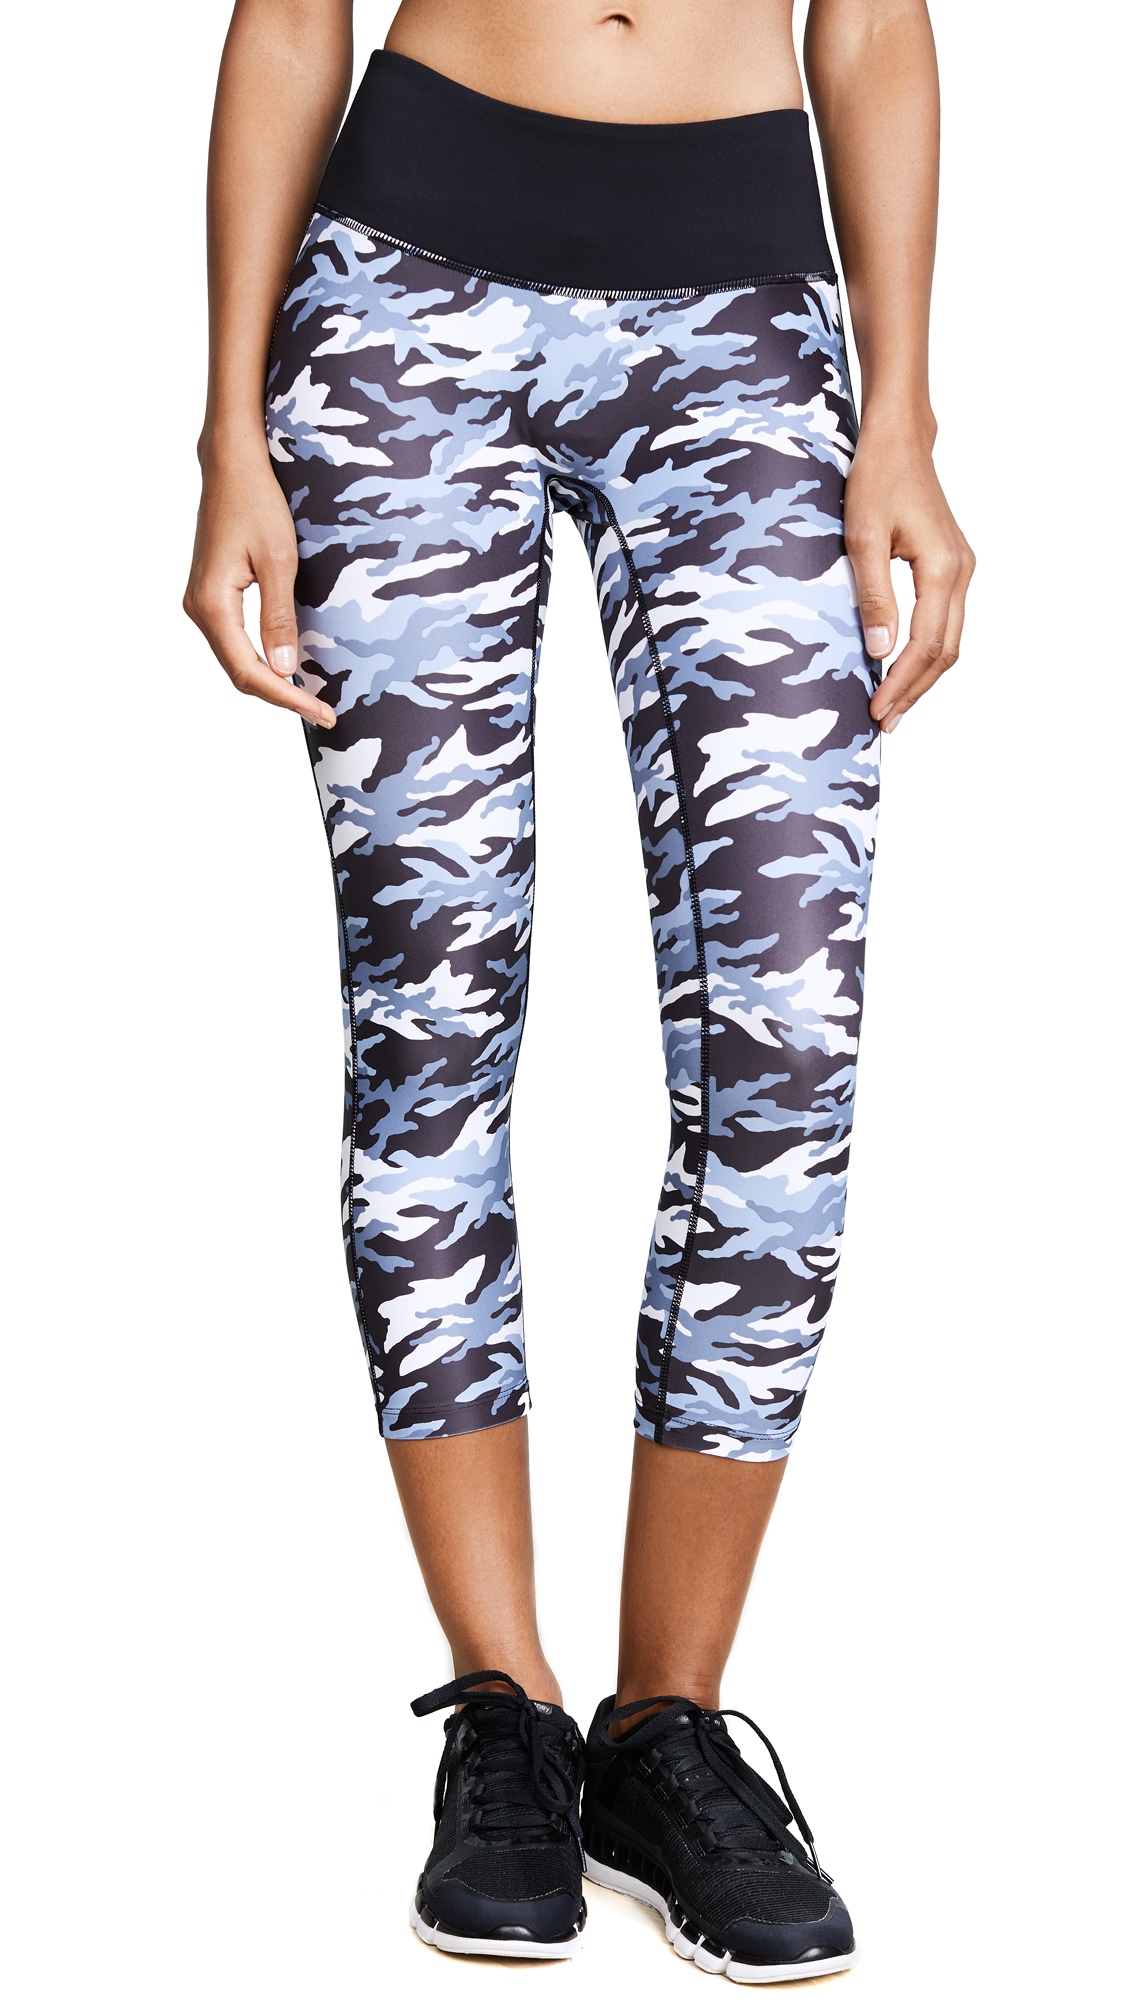 PRISMSPORT Patton Capri Leggings